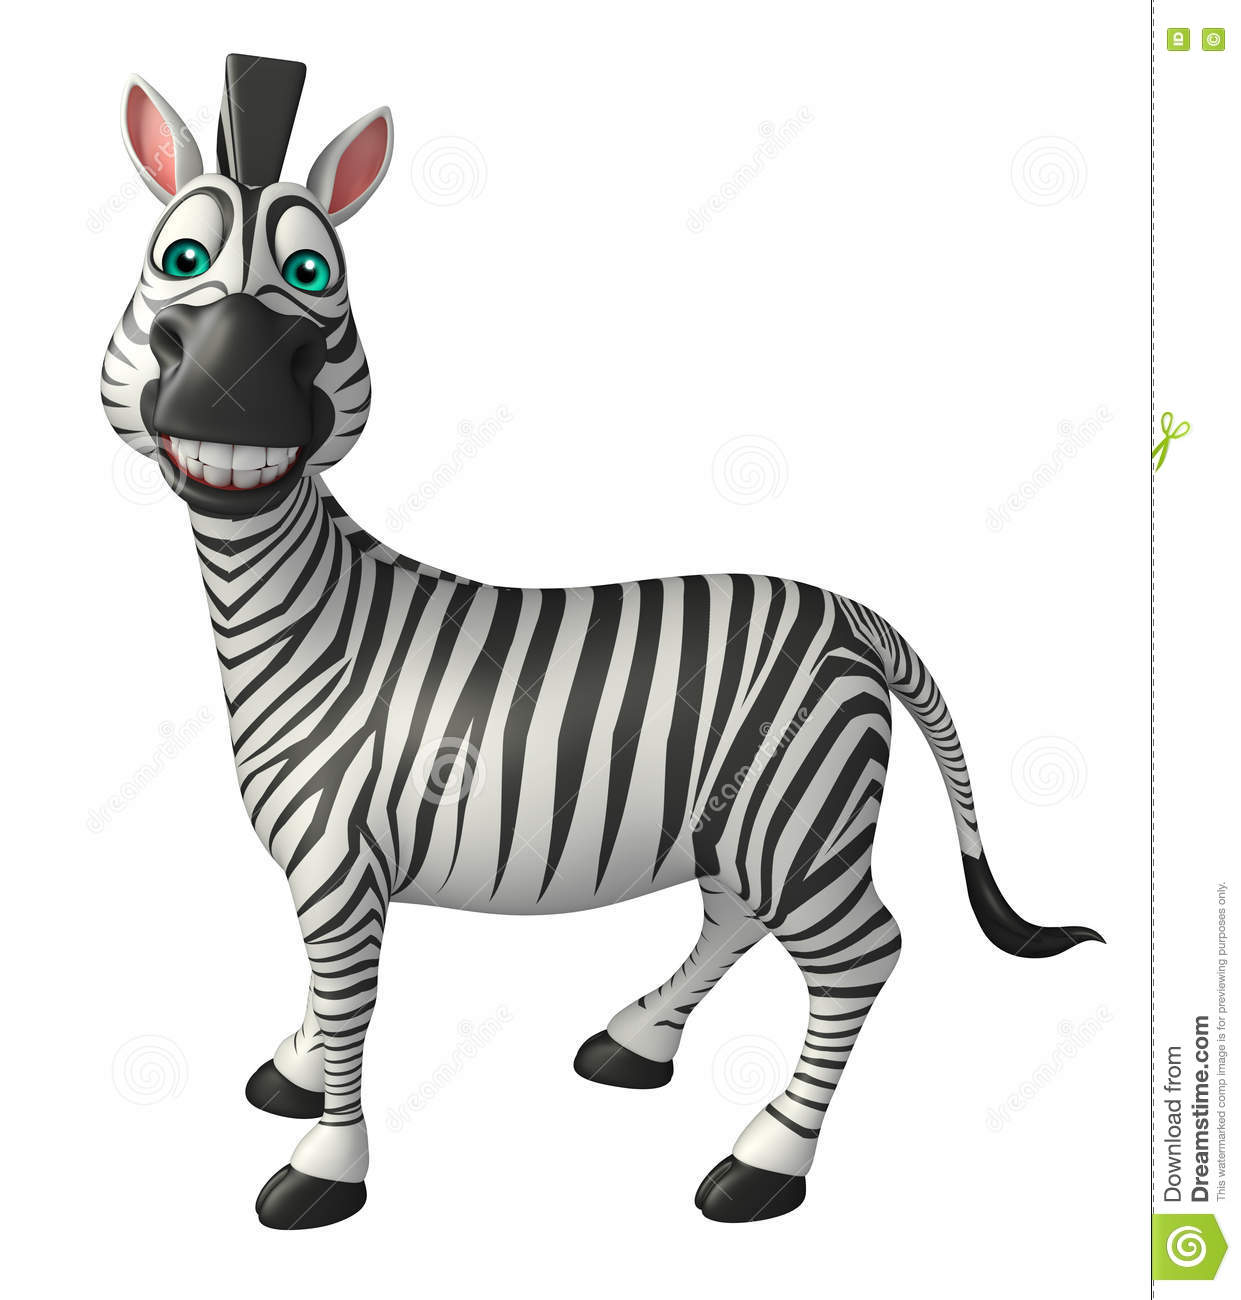 Cartoon Characters Zebra : Funny zebra made of bread and vegetables stock image